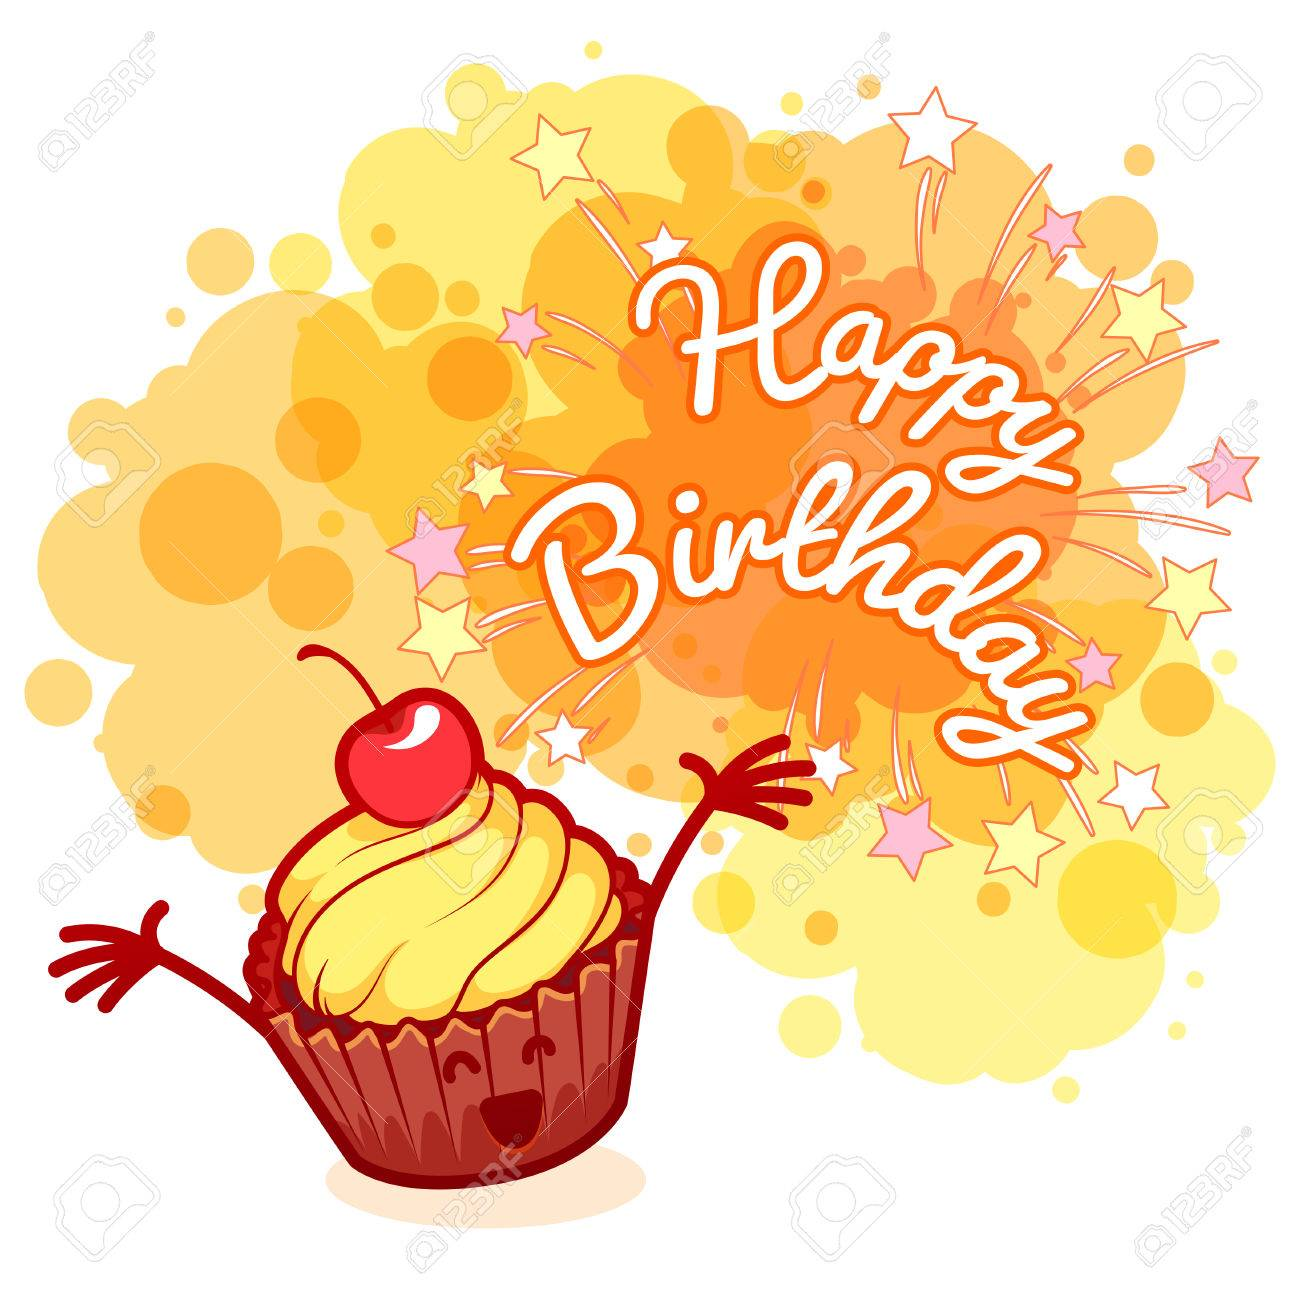 very happy birthday ; 50951864-greeting-card-happy-birthday-with-very-happy-cupcake-with-cherry-orange-blobs-on-white-background-te